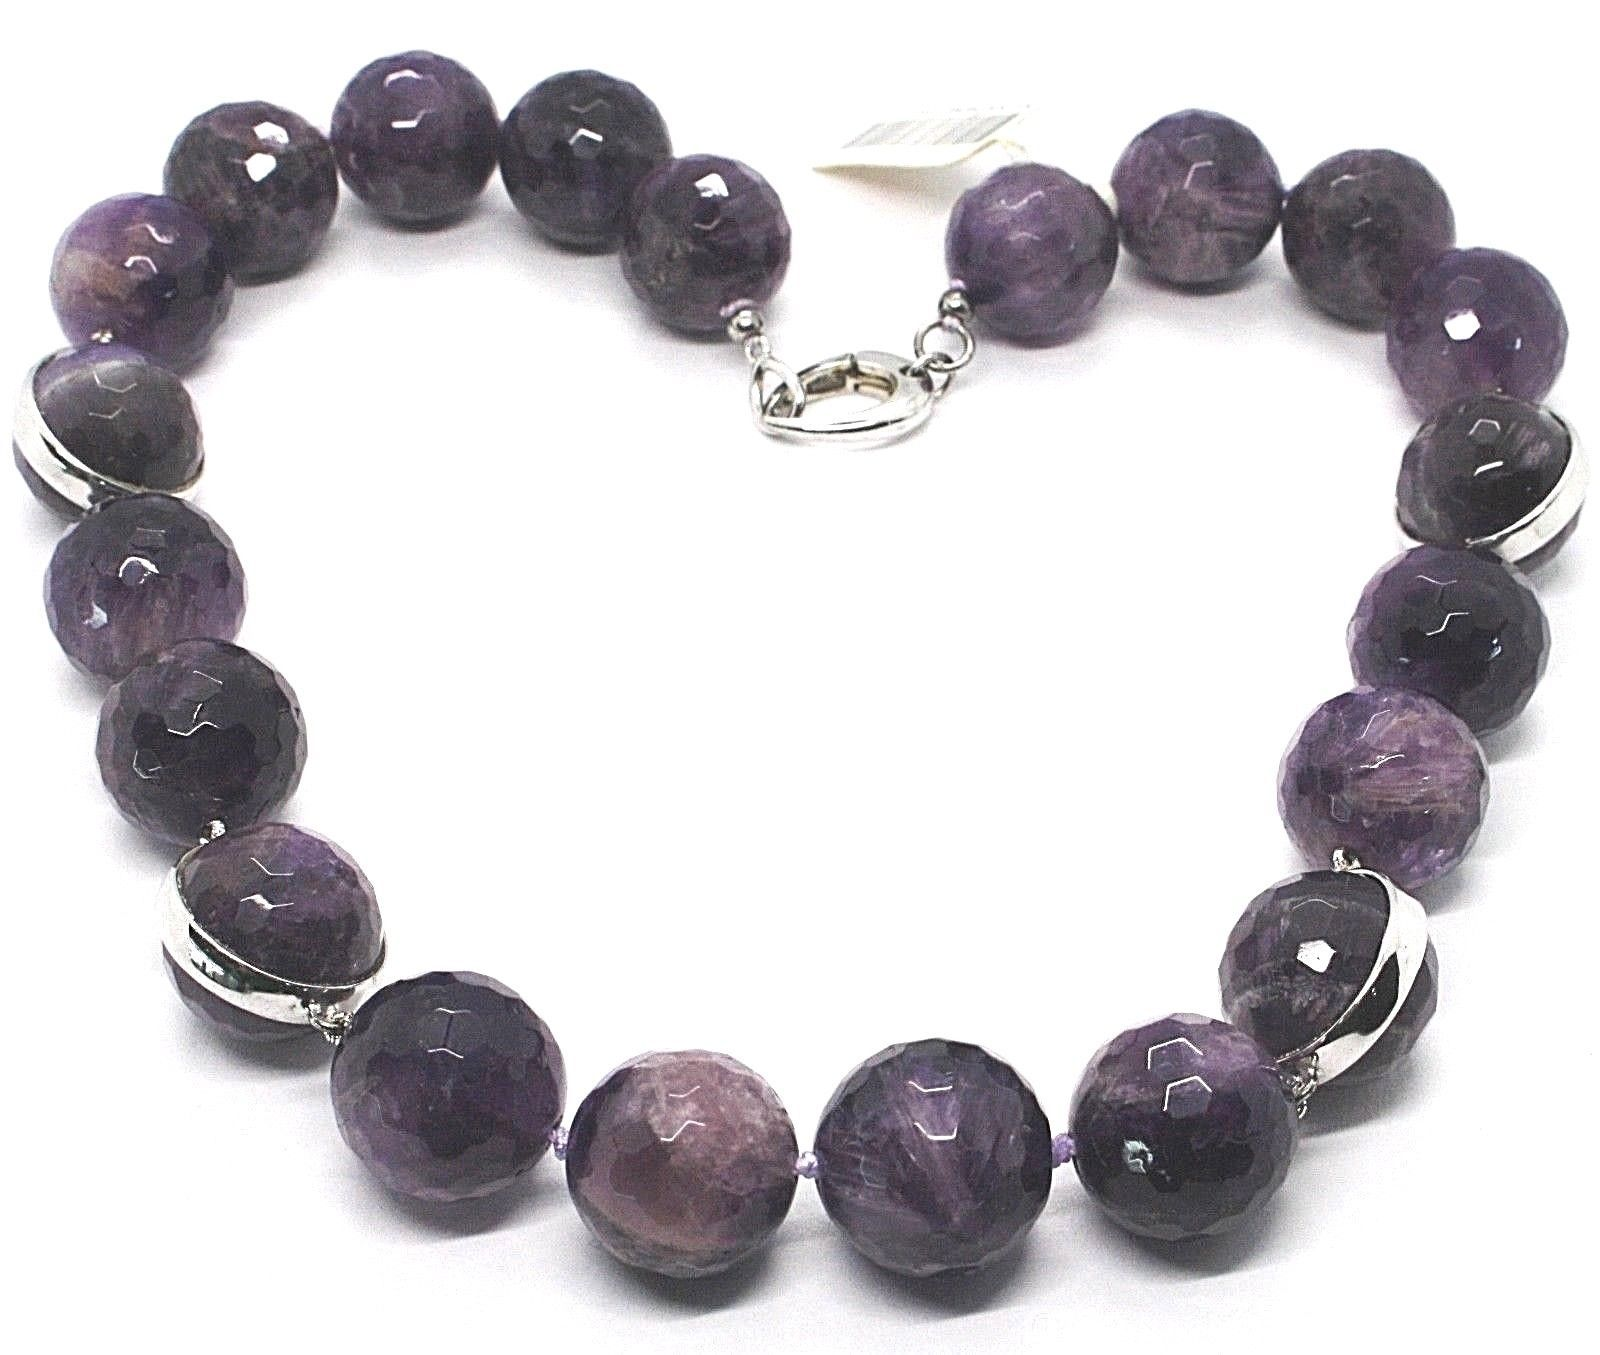 Silver necklace 925, Spheres Large Faceted Amethyst 20 mm, length 50 cm